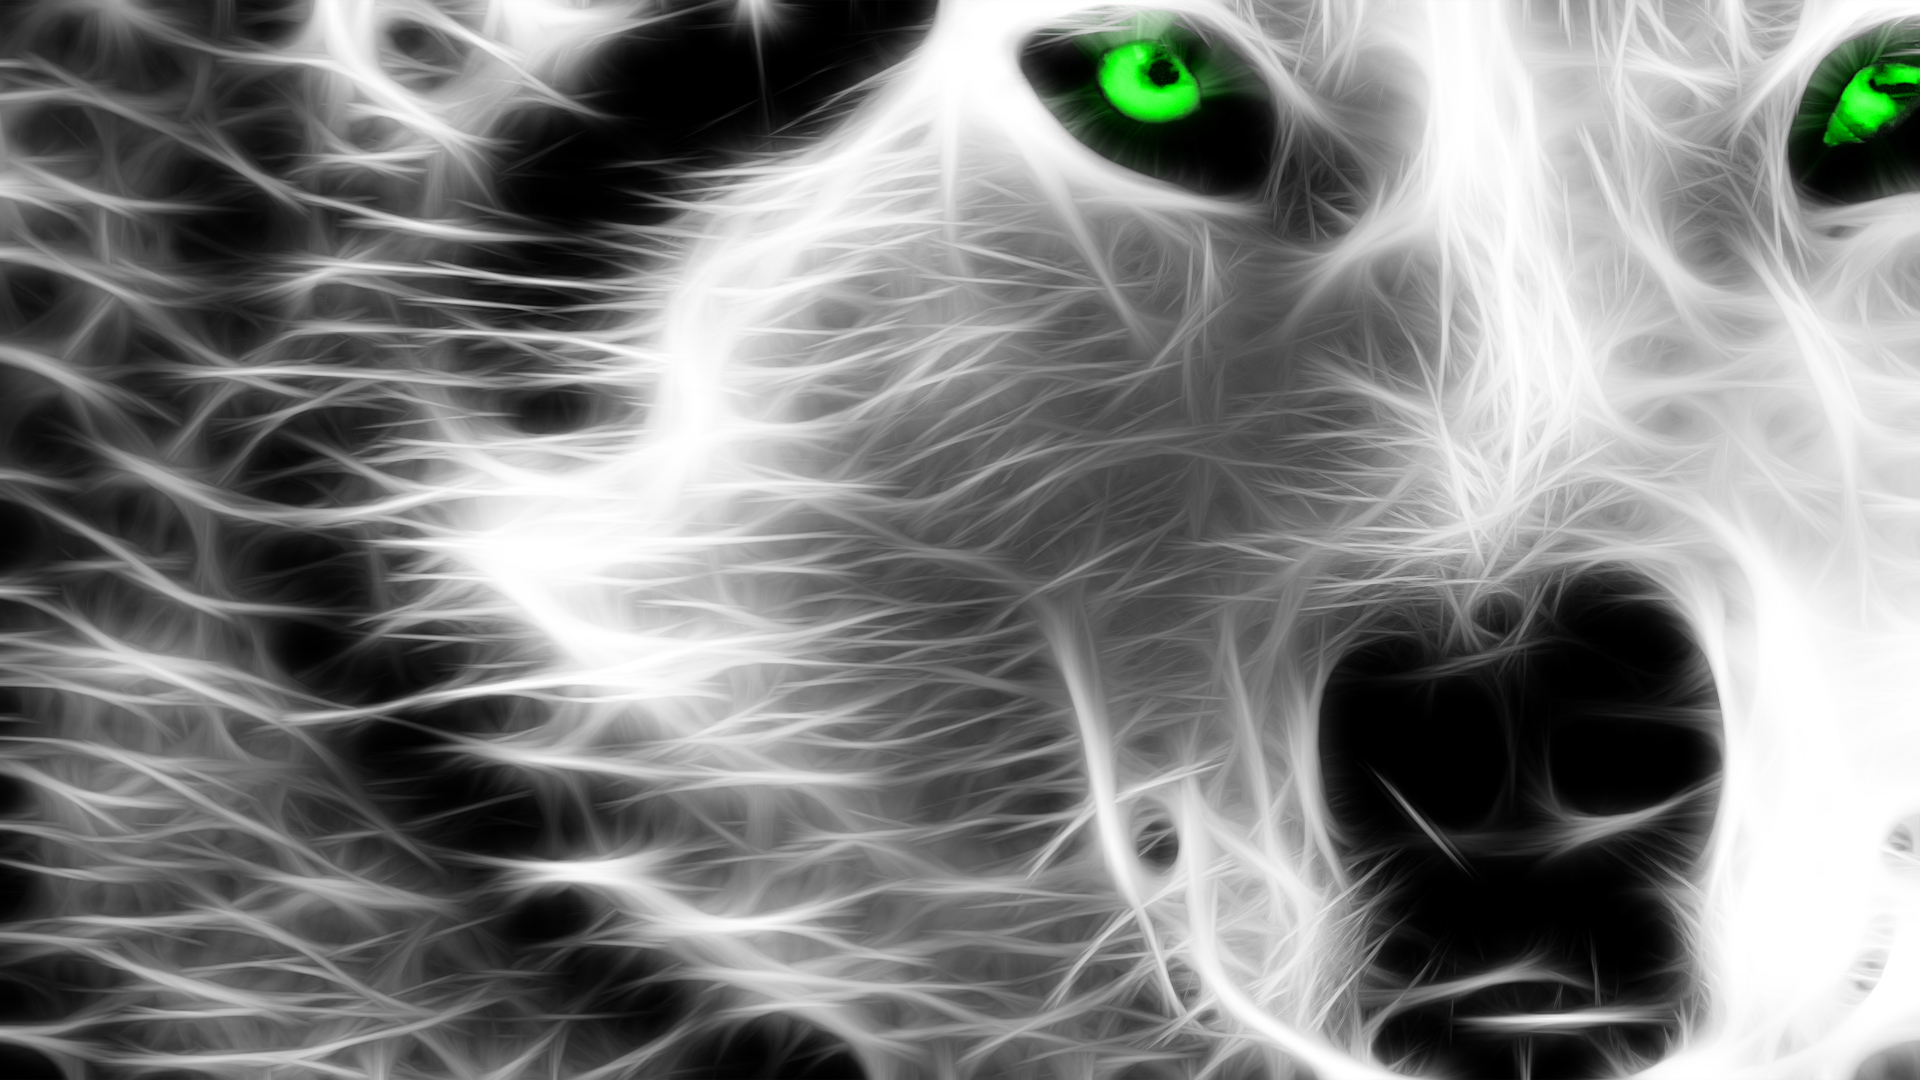 Wolf - Fractal Effect by SithSyanide on DeviantArt